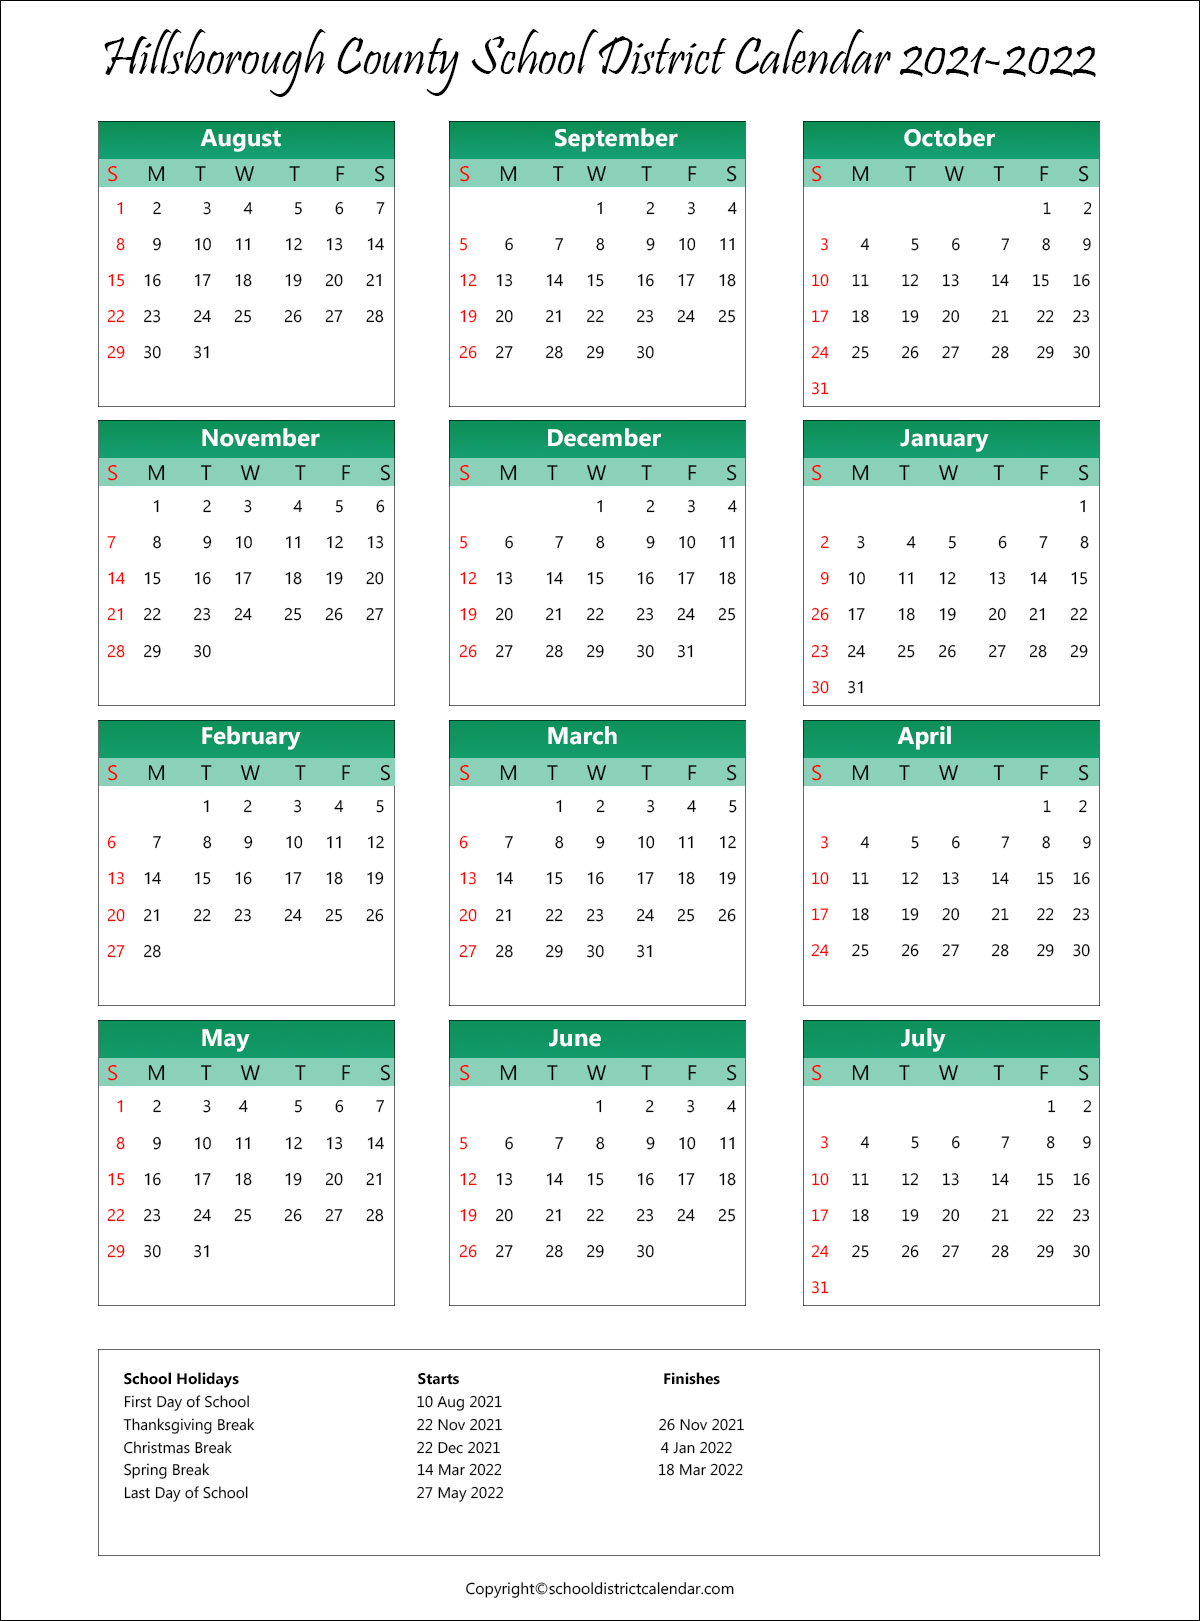 Hillsborough County School District Calendar Holidays 2021 2022